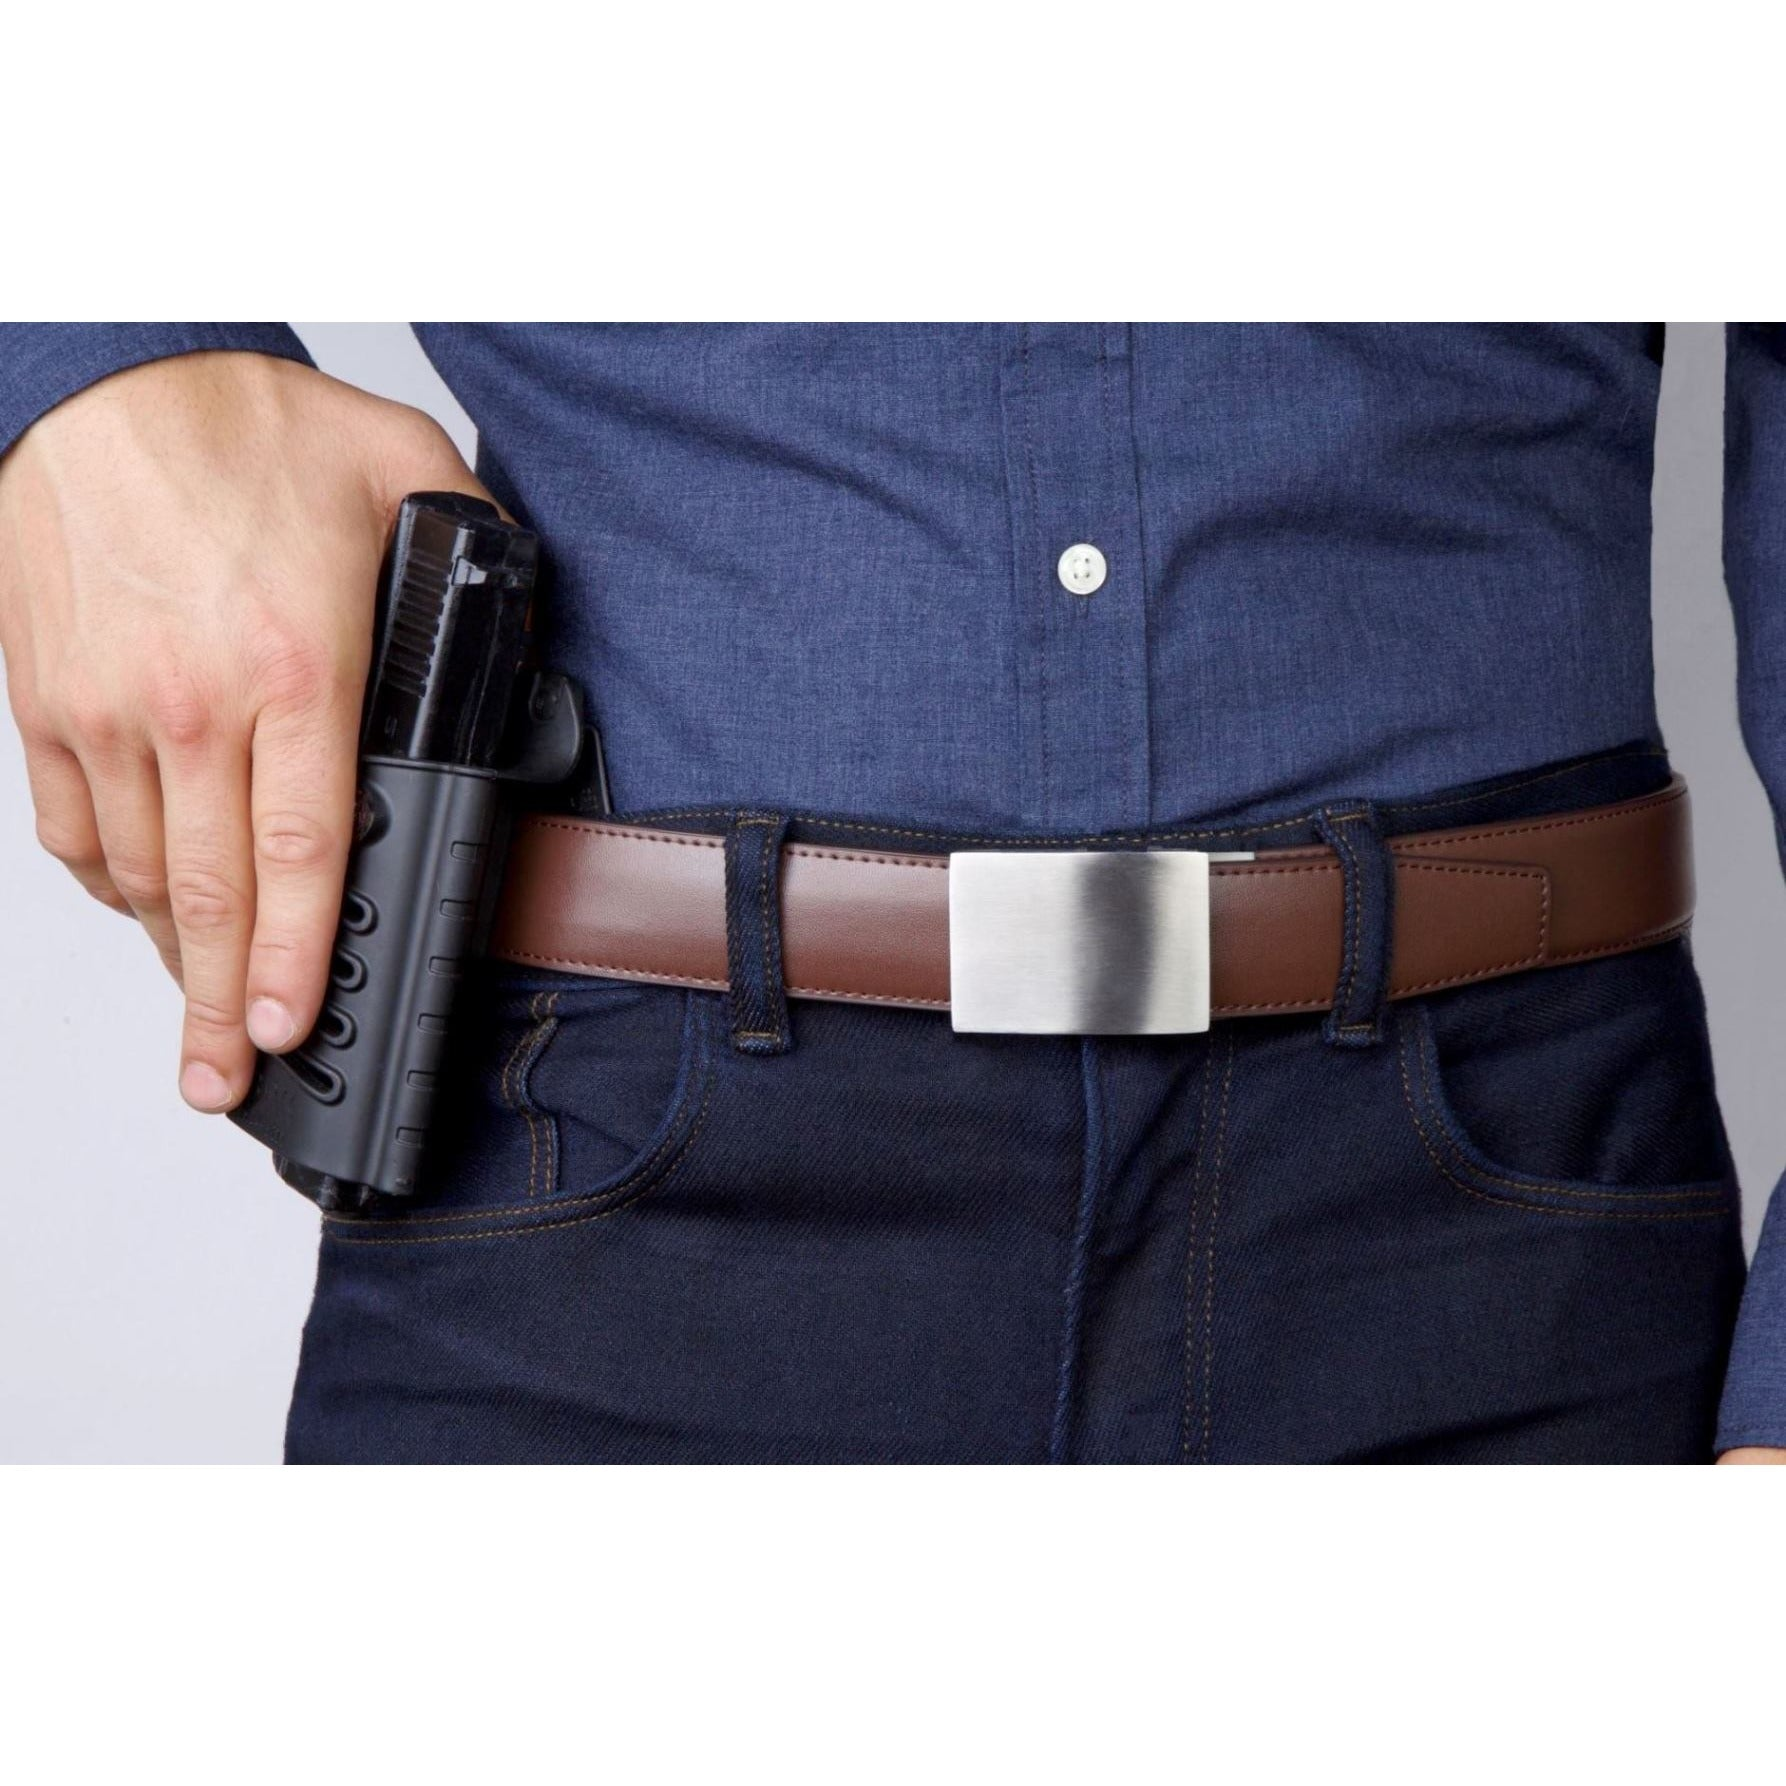 Kore Gun Belts X4 Stainless Steel Buckle Brown Top Grain Leather Kore Essentials Over the past year, we've found an. x4 stainless steel buckle brown leather gun belt